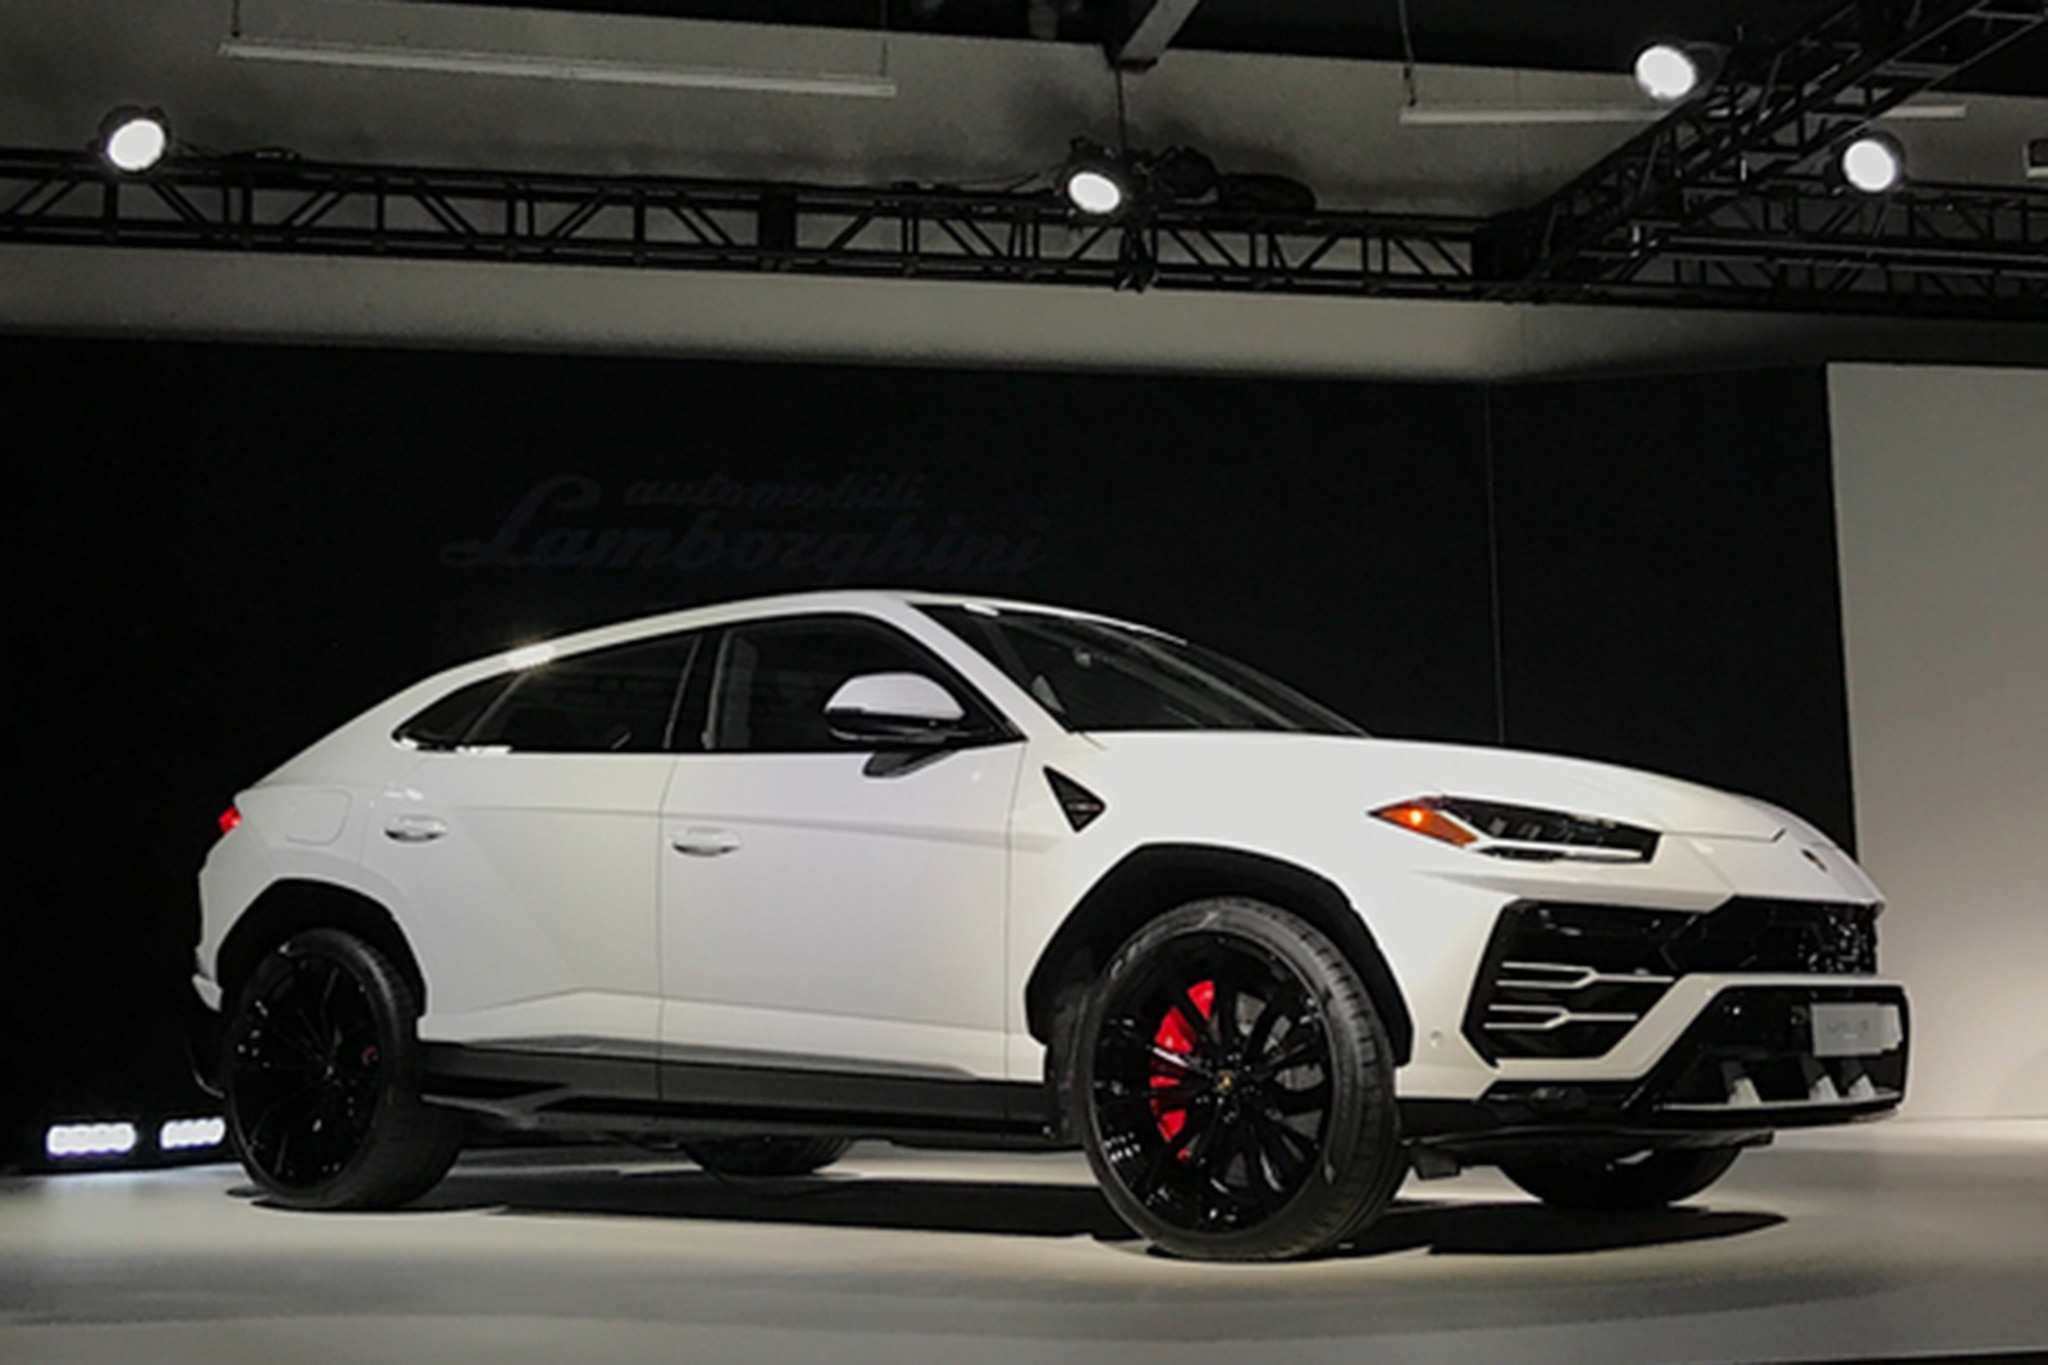 77 All New 2019 Lamborghini Suv Price Rumors for 2019 Lamborghini Suv Price